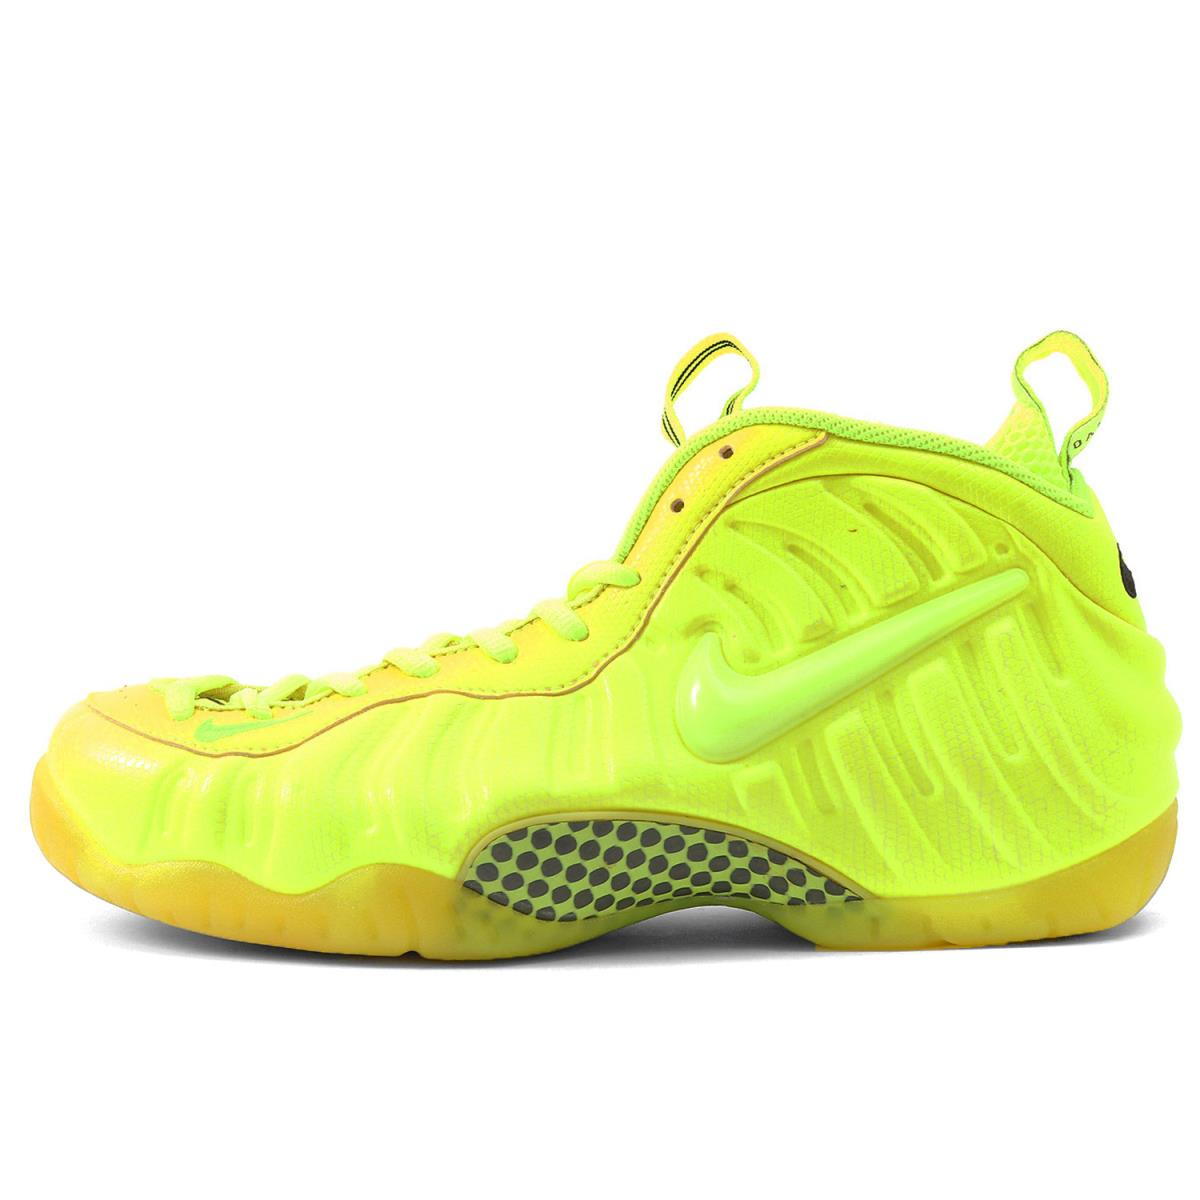 buy online df155 e24cd NIKE (Nike) AIR FOAMPOSITE PRO VOLT (624,041-700) bolt X black  US10.5(28.5cm)